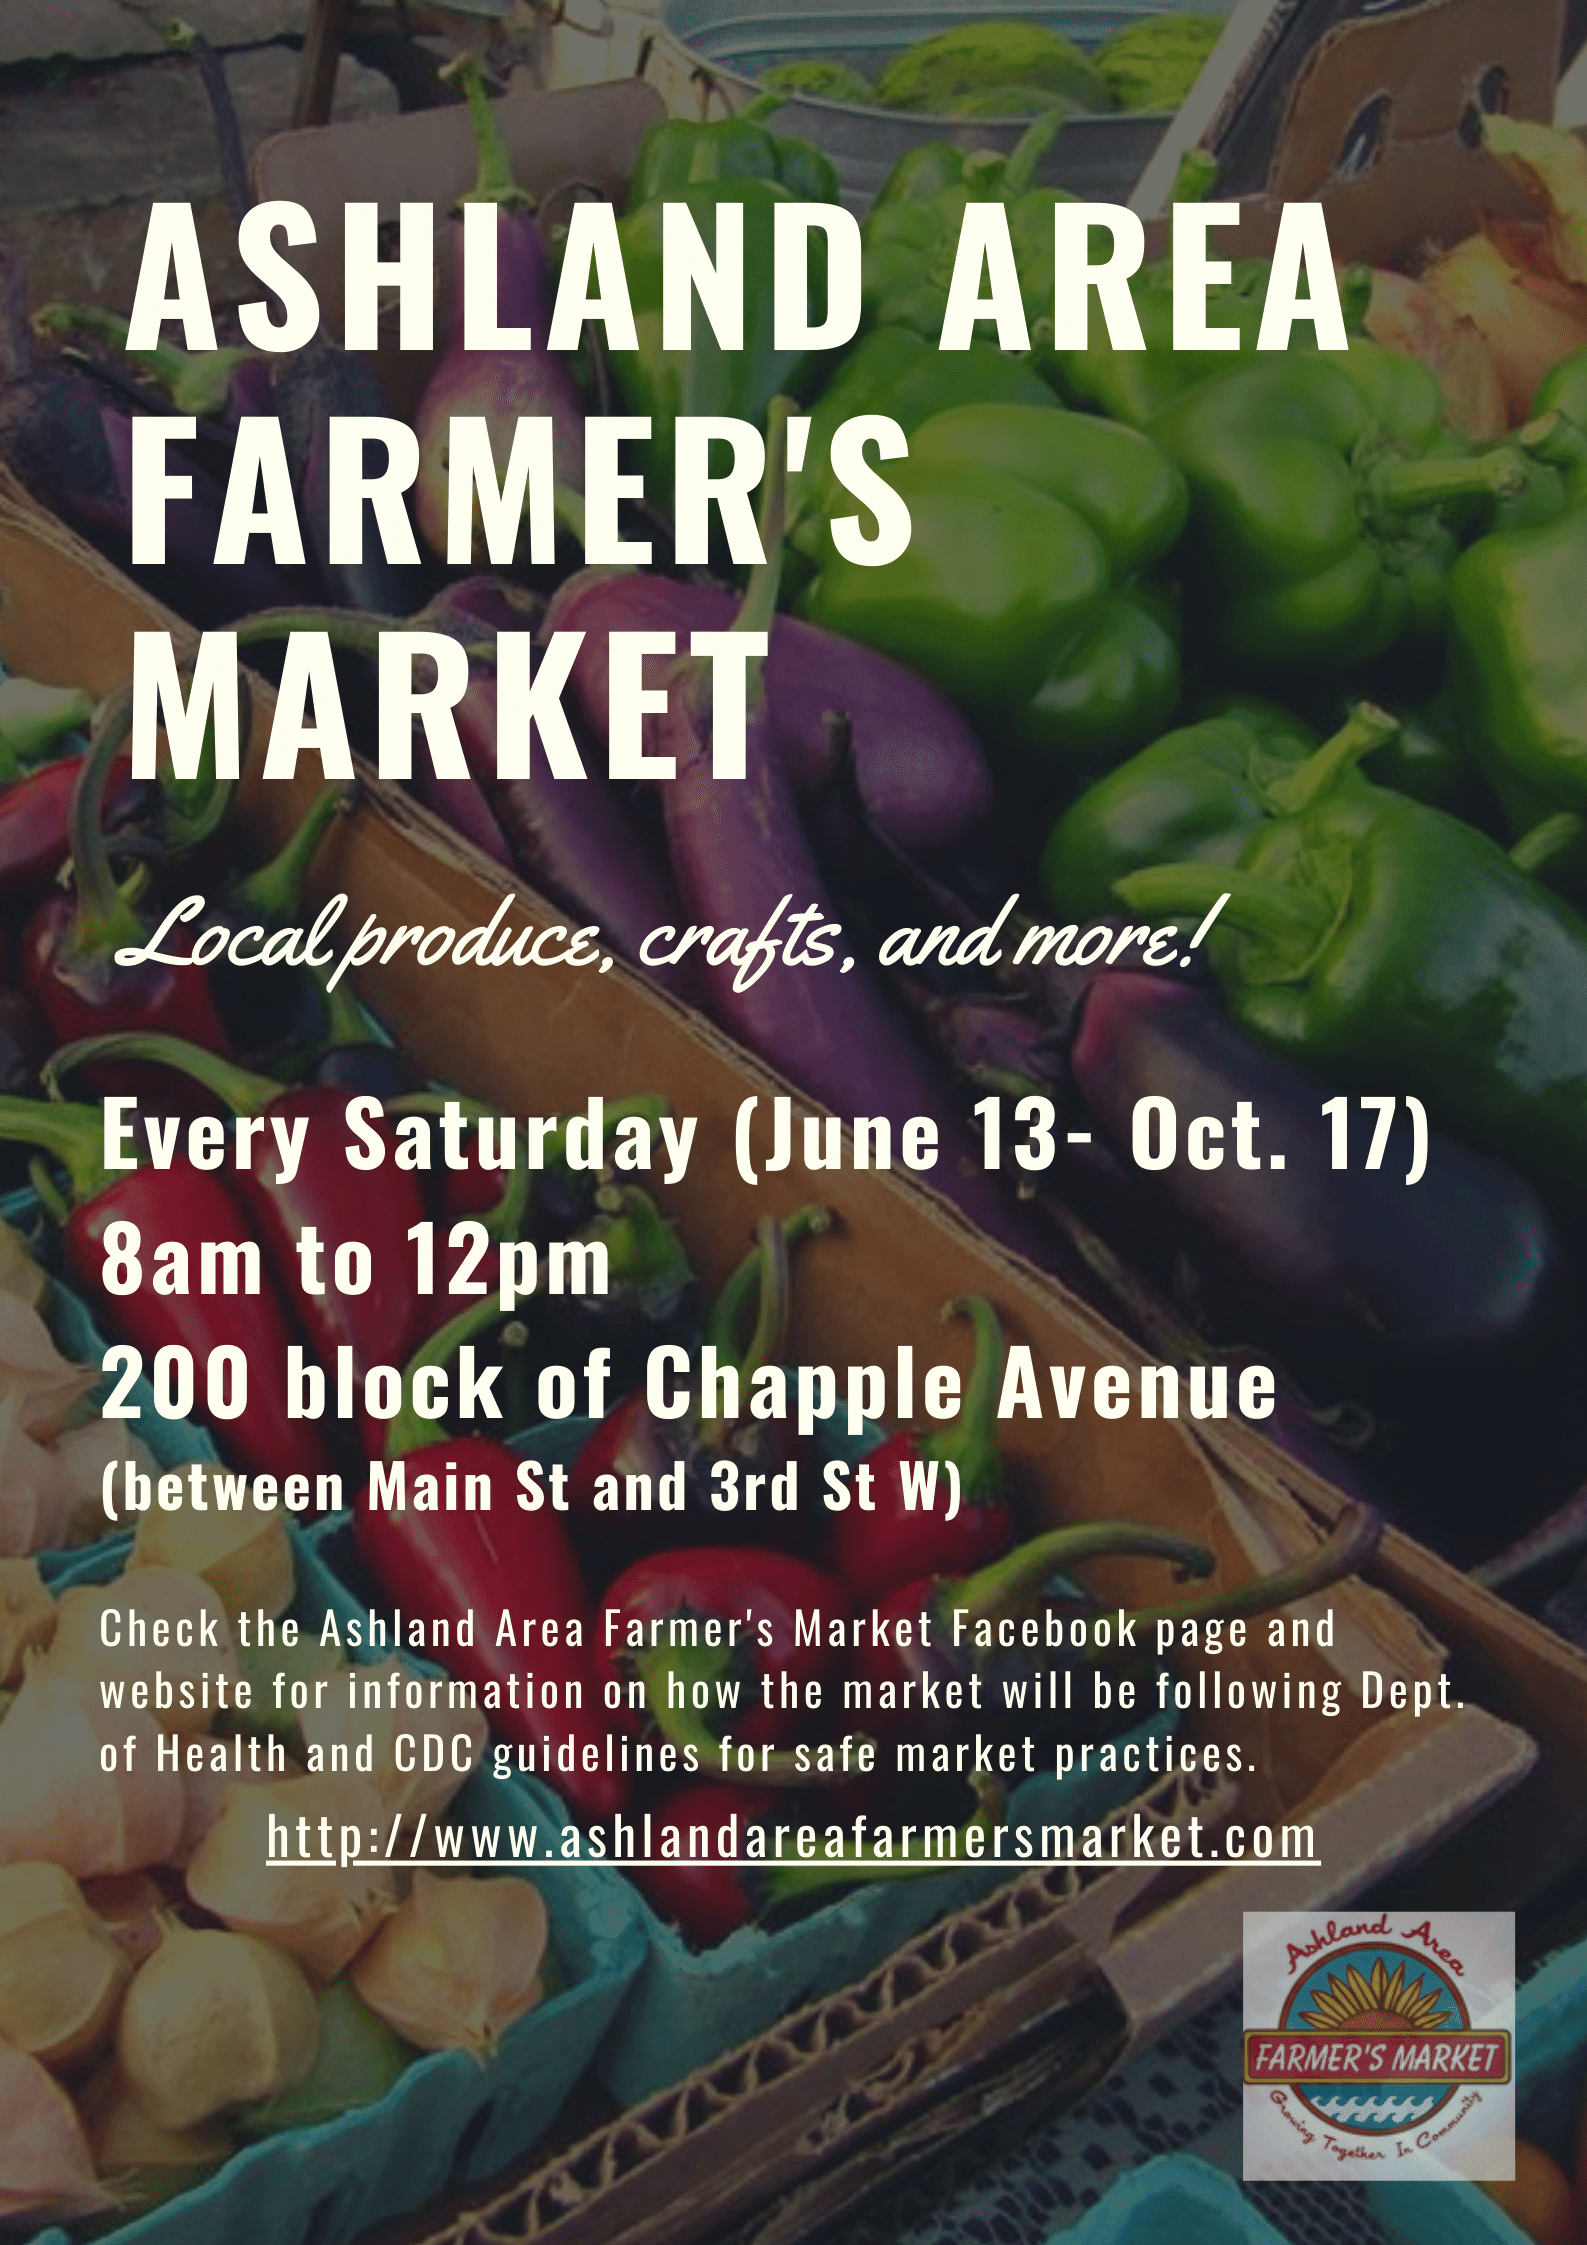 Farmers Market Flyer 2020